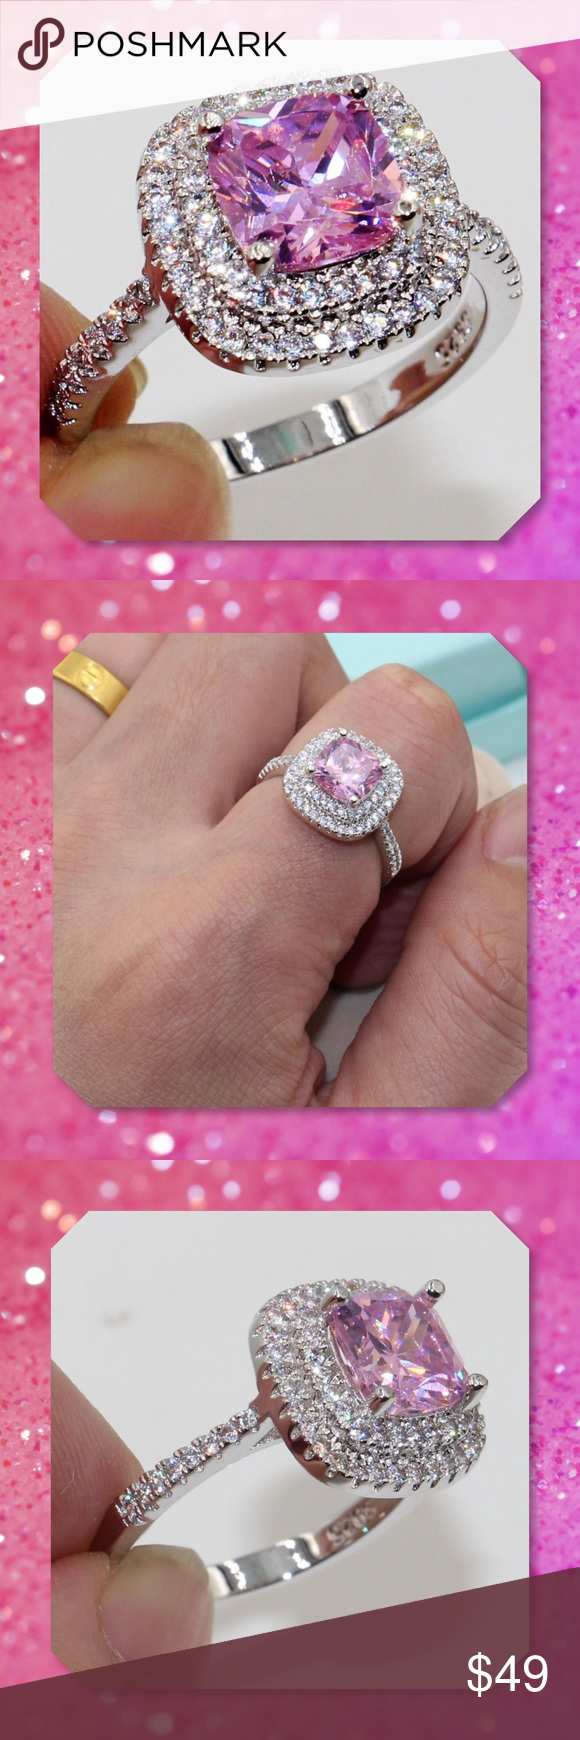 JUST IN🆕Pink Double Halo 925 Silver Ring | Ring boxes, Silver rings ...